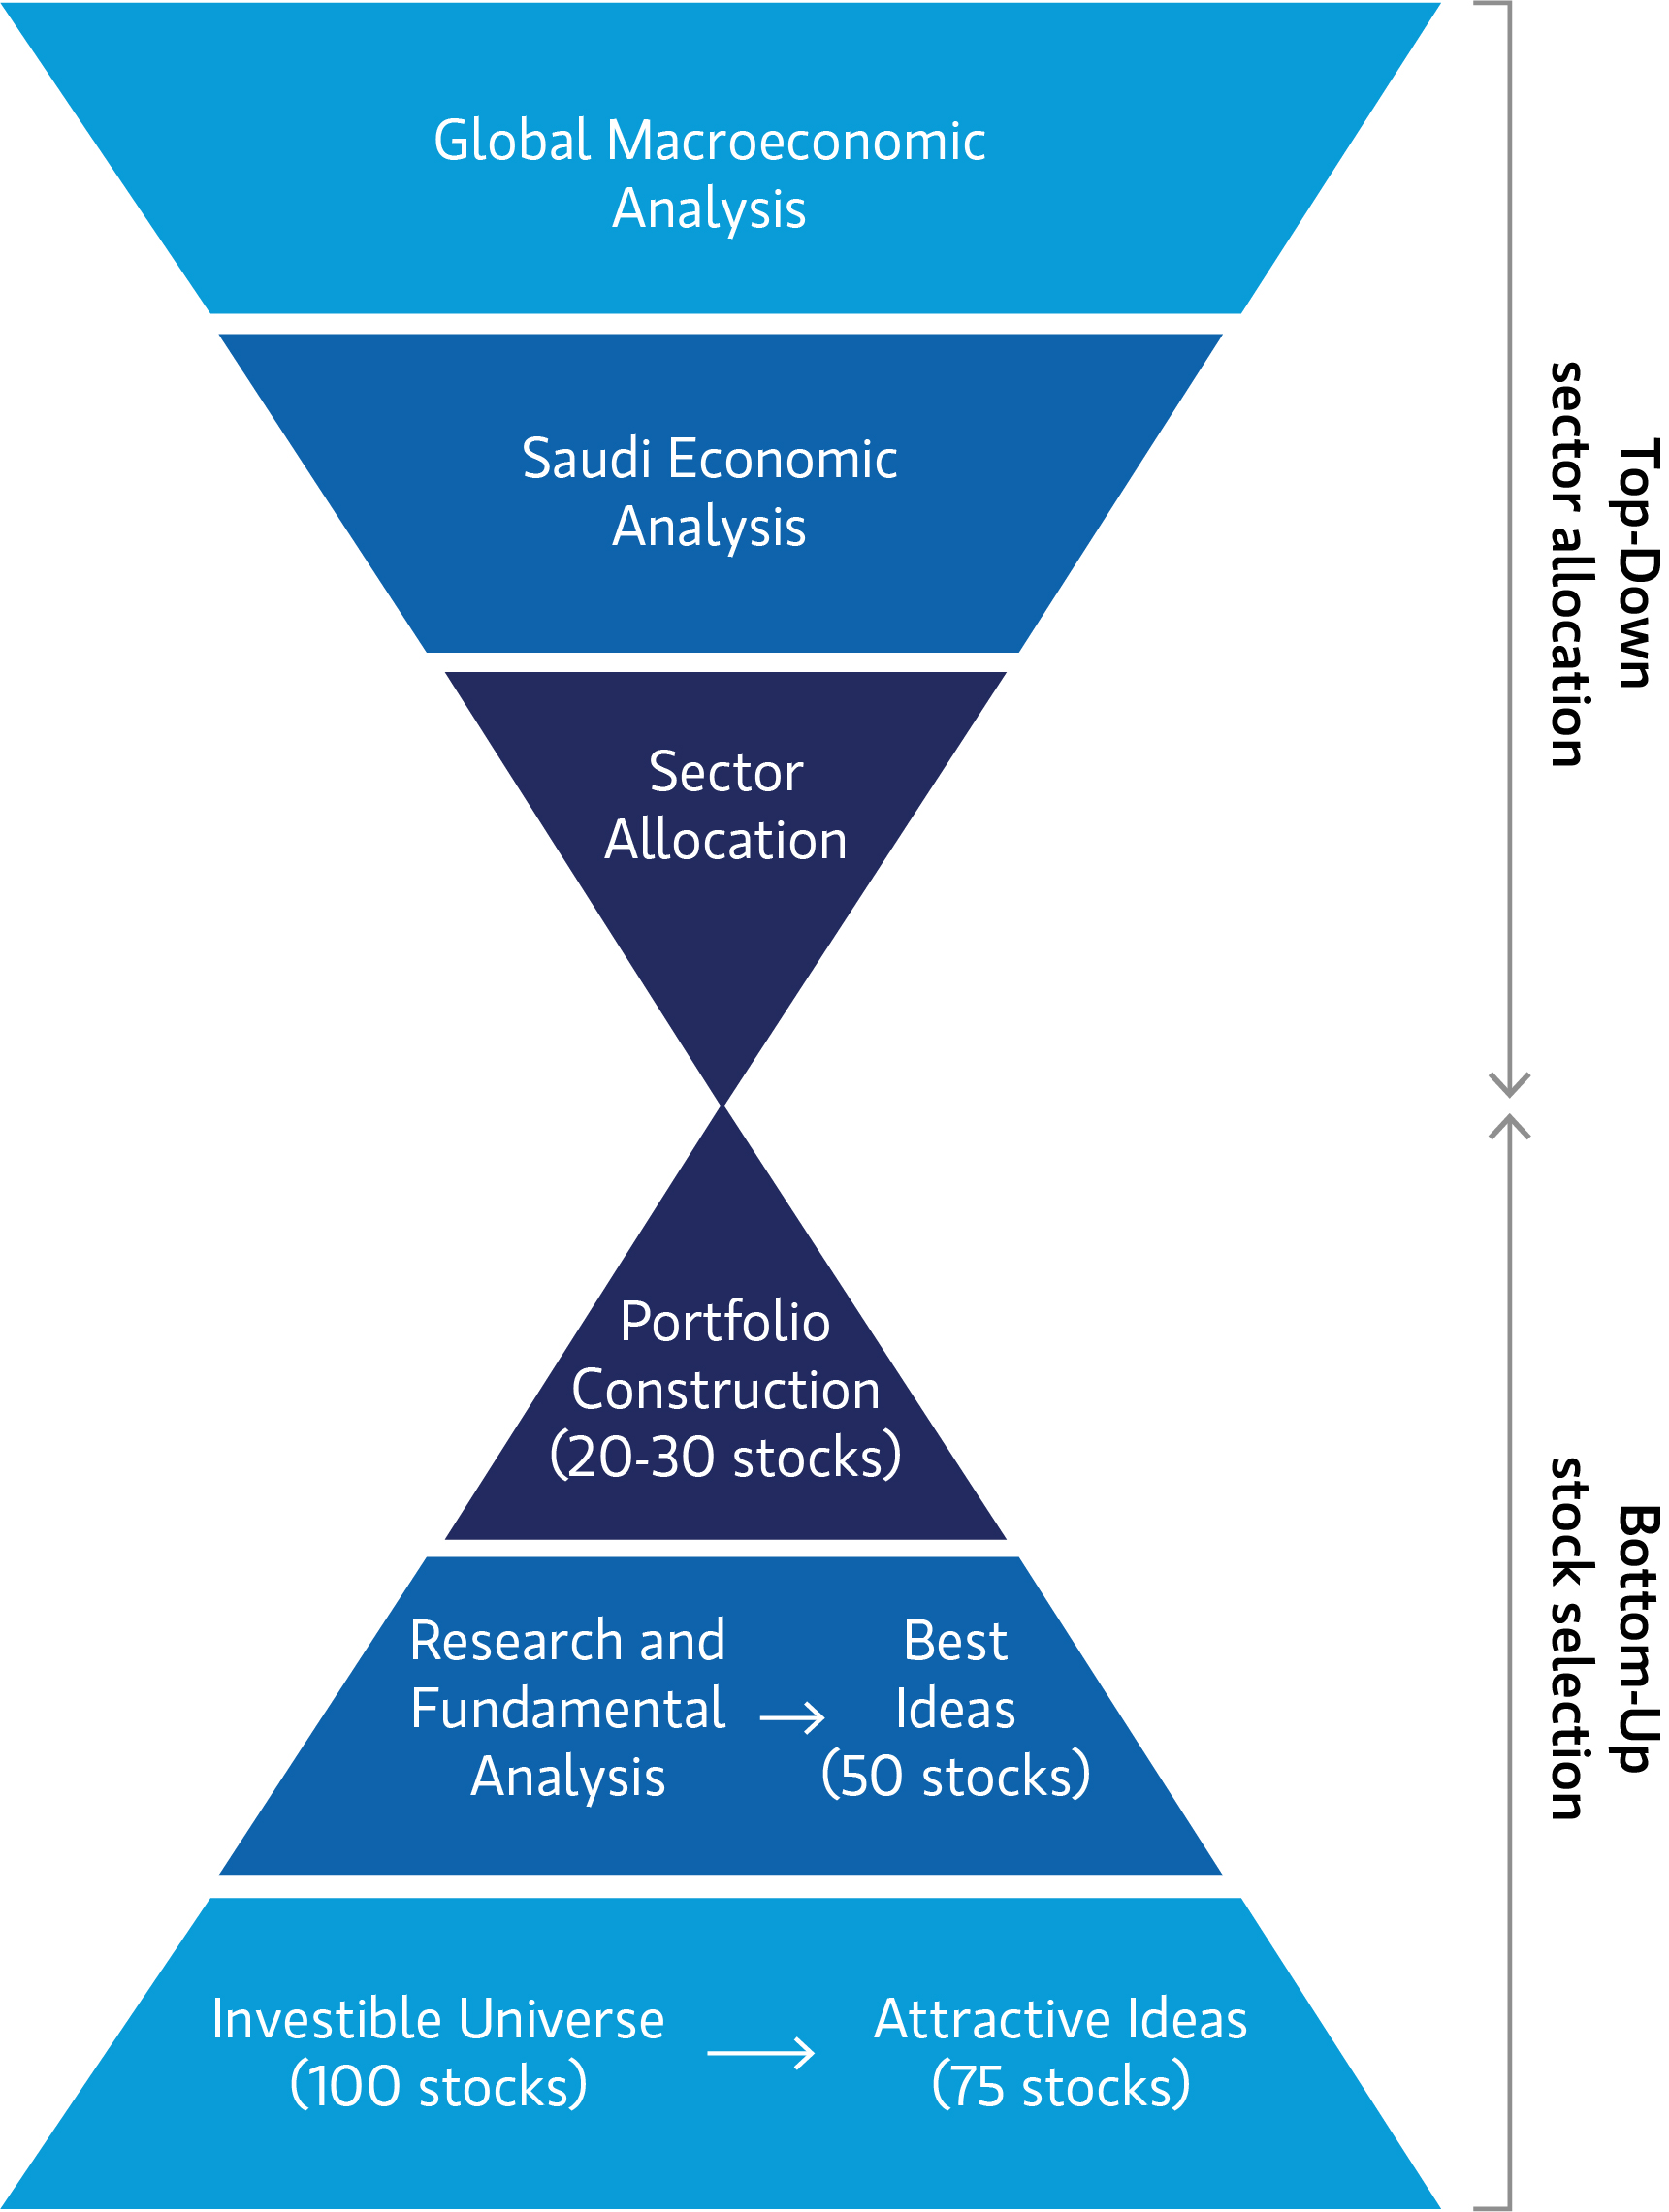 Strategy_Saudi_Equity_Strategy